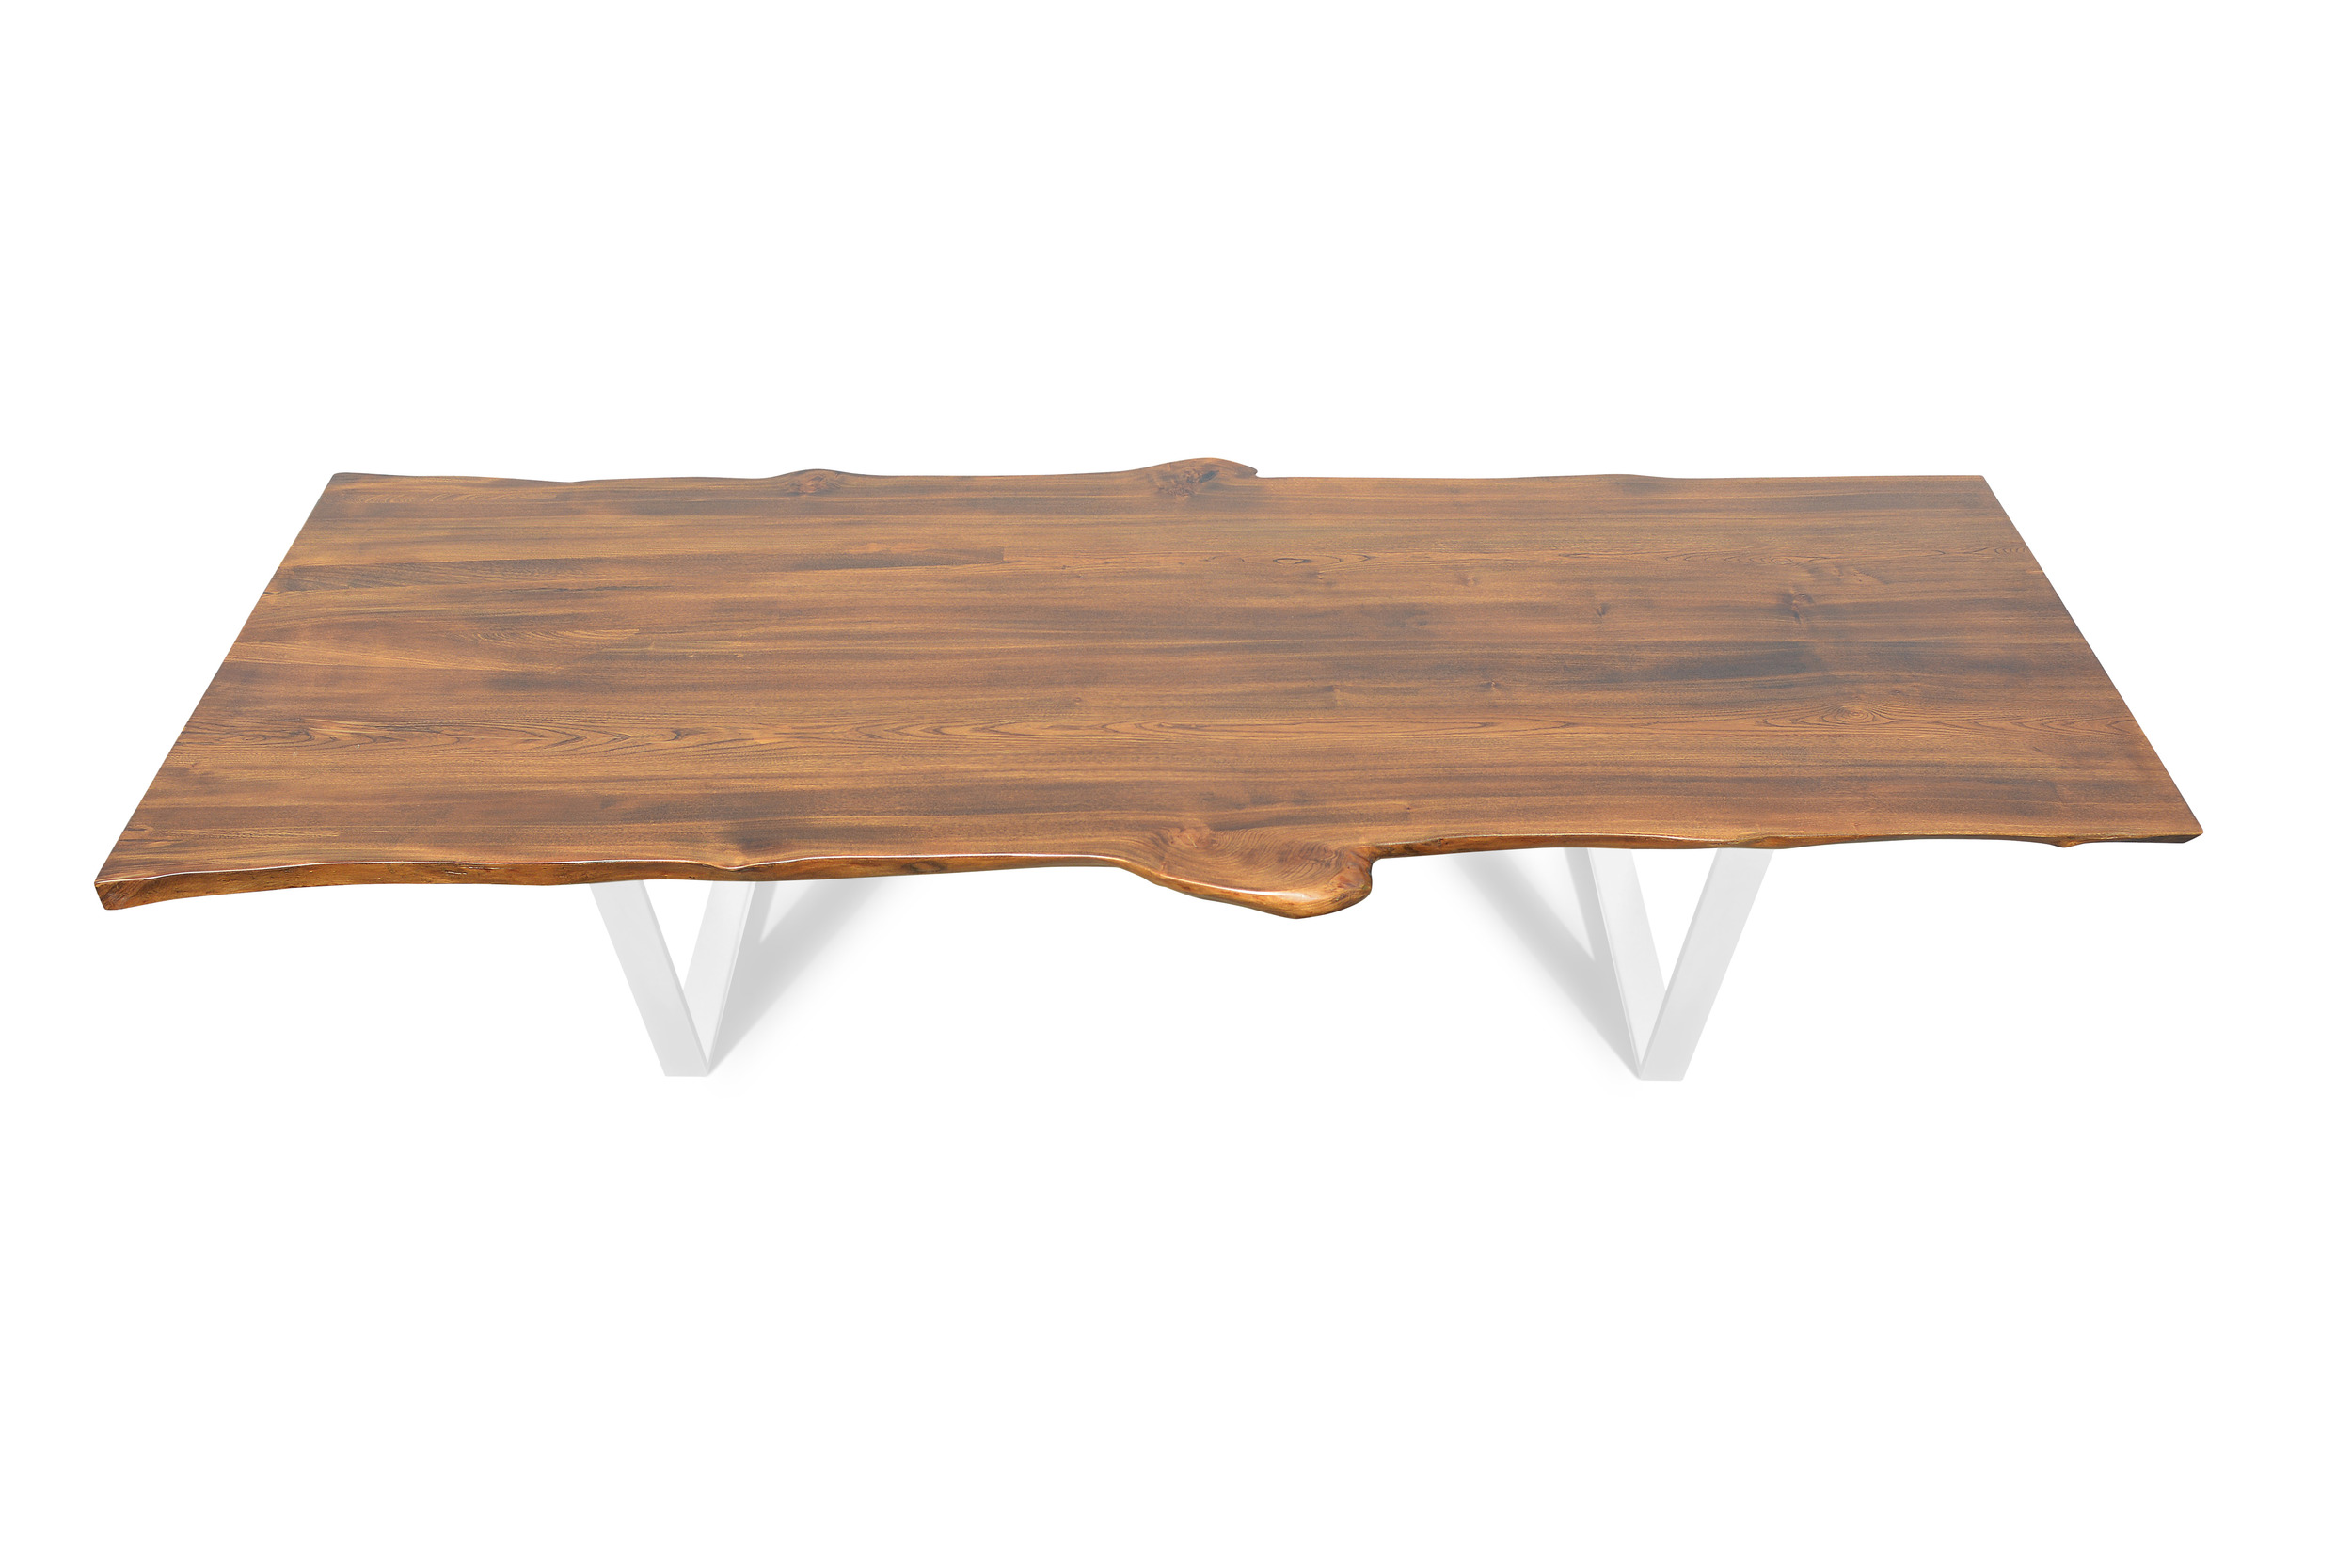 Etz & Steel Live Edge Cognac Table Pearl White Base 1.jpg